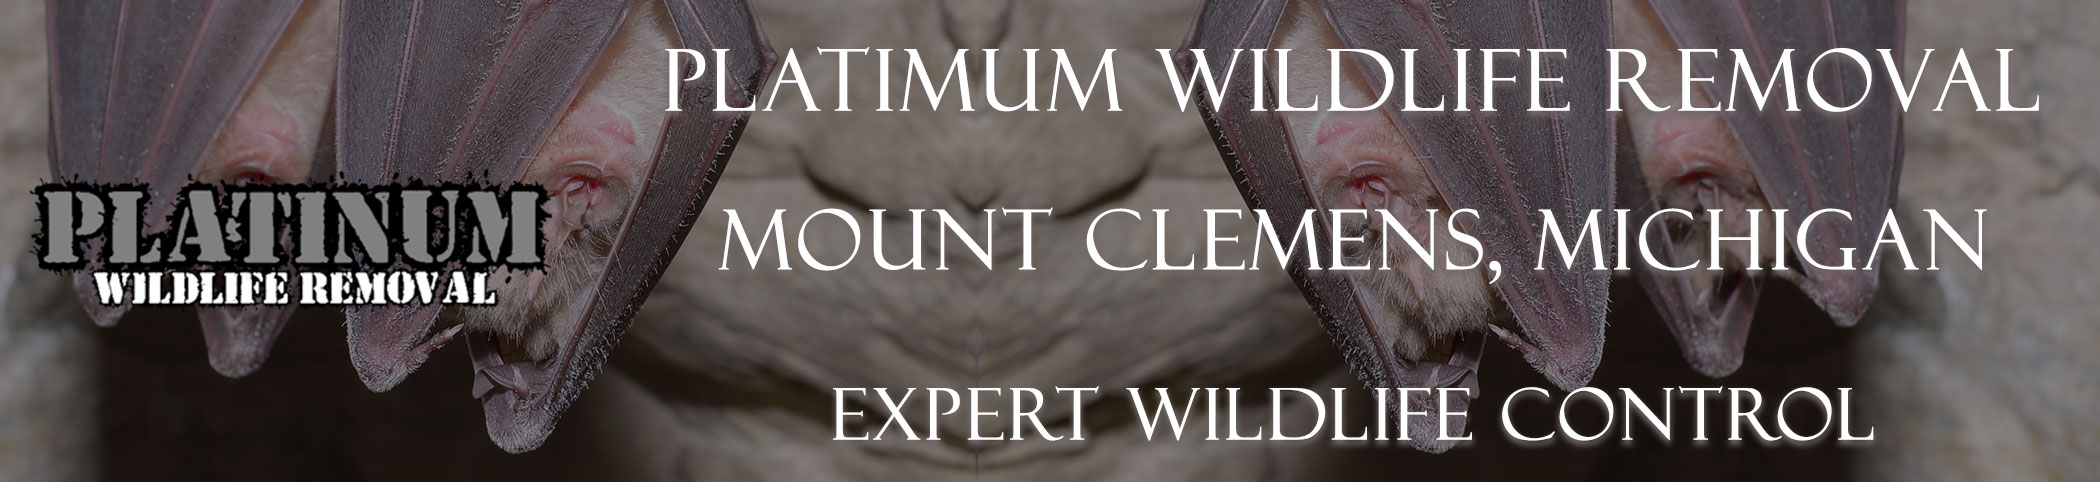 Mount-Clemens-Platinum-Wildlife-Removal-michgan